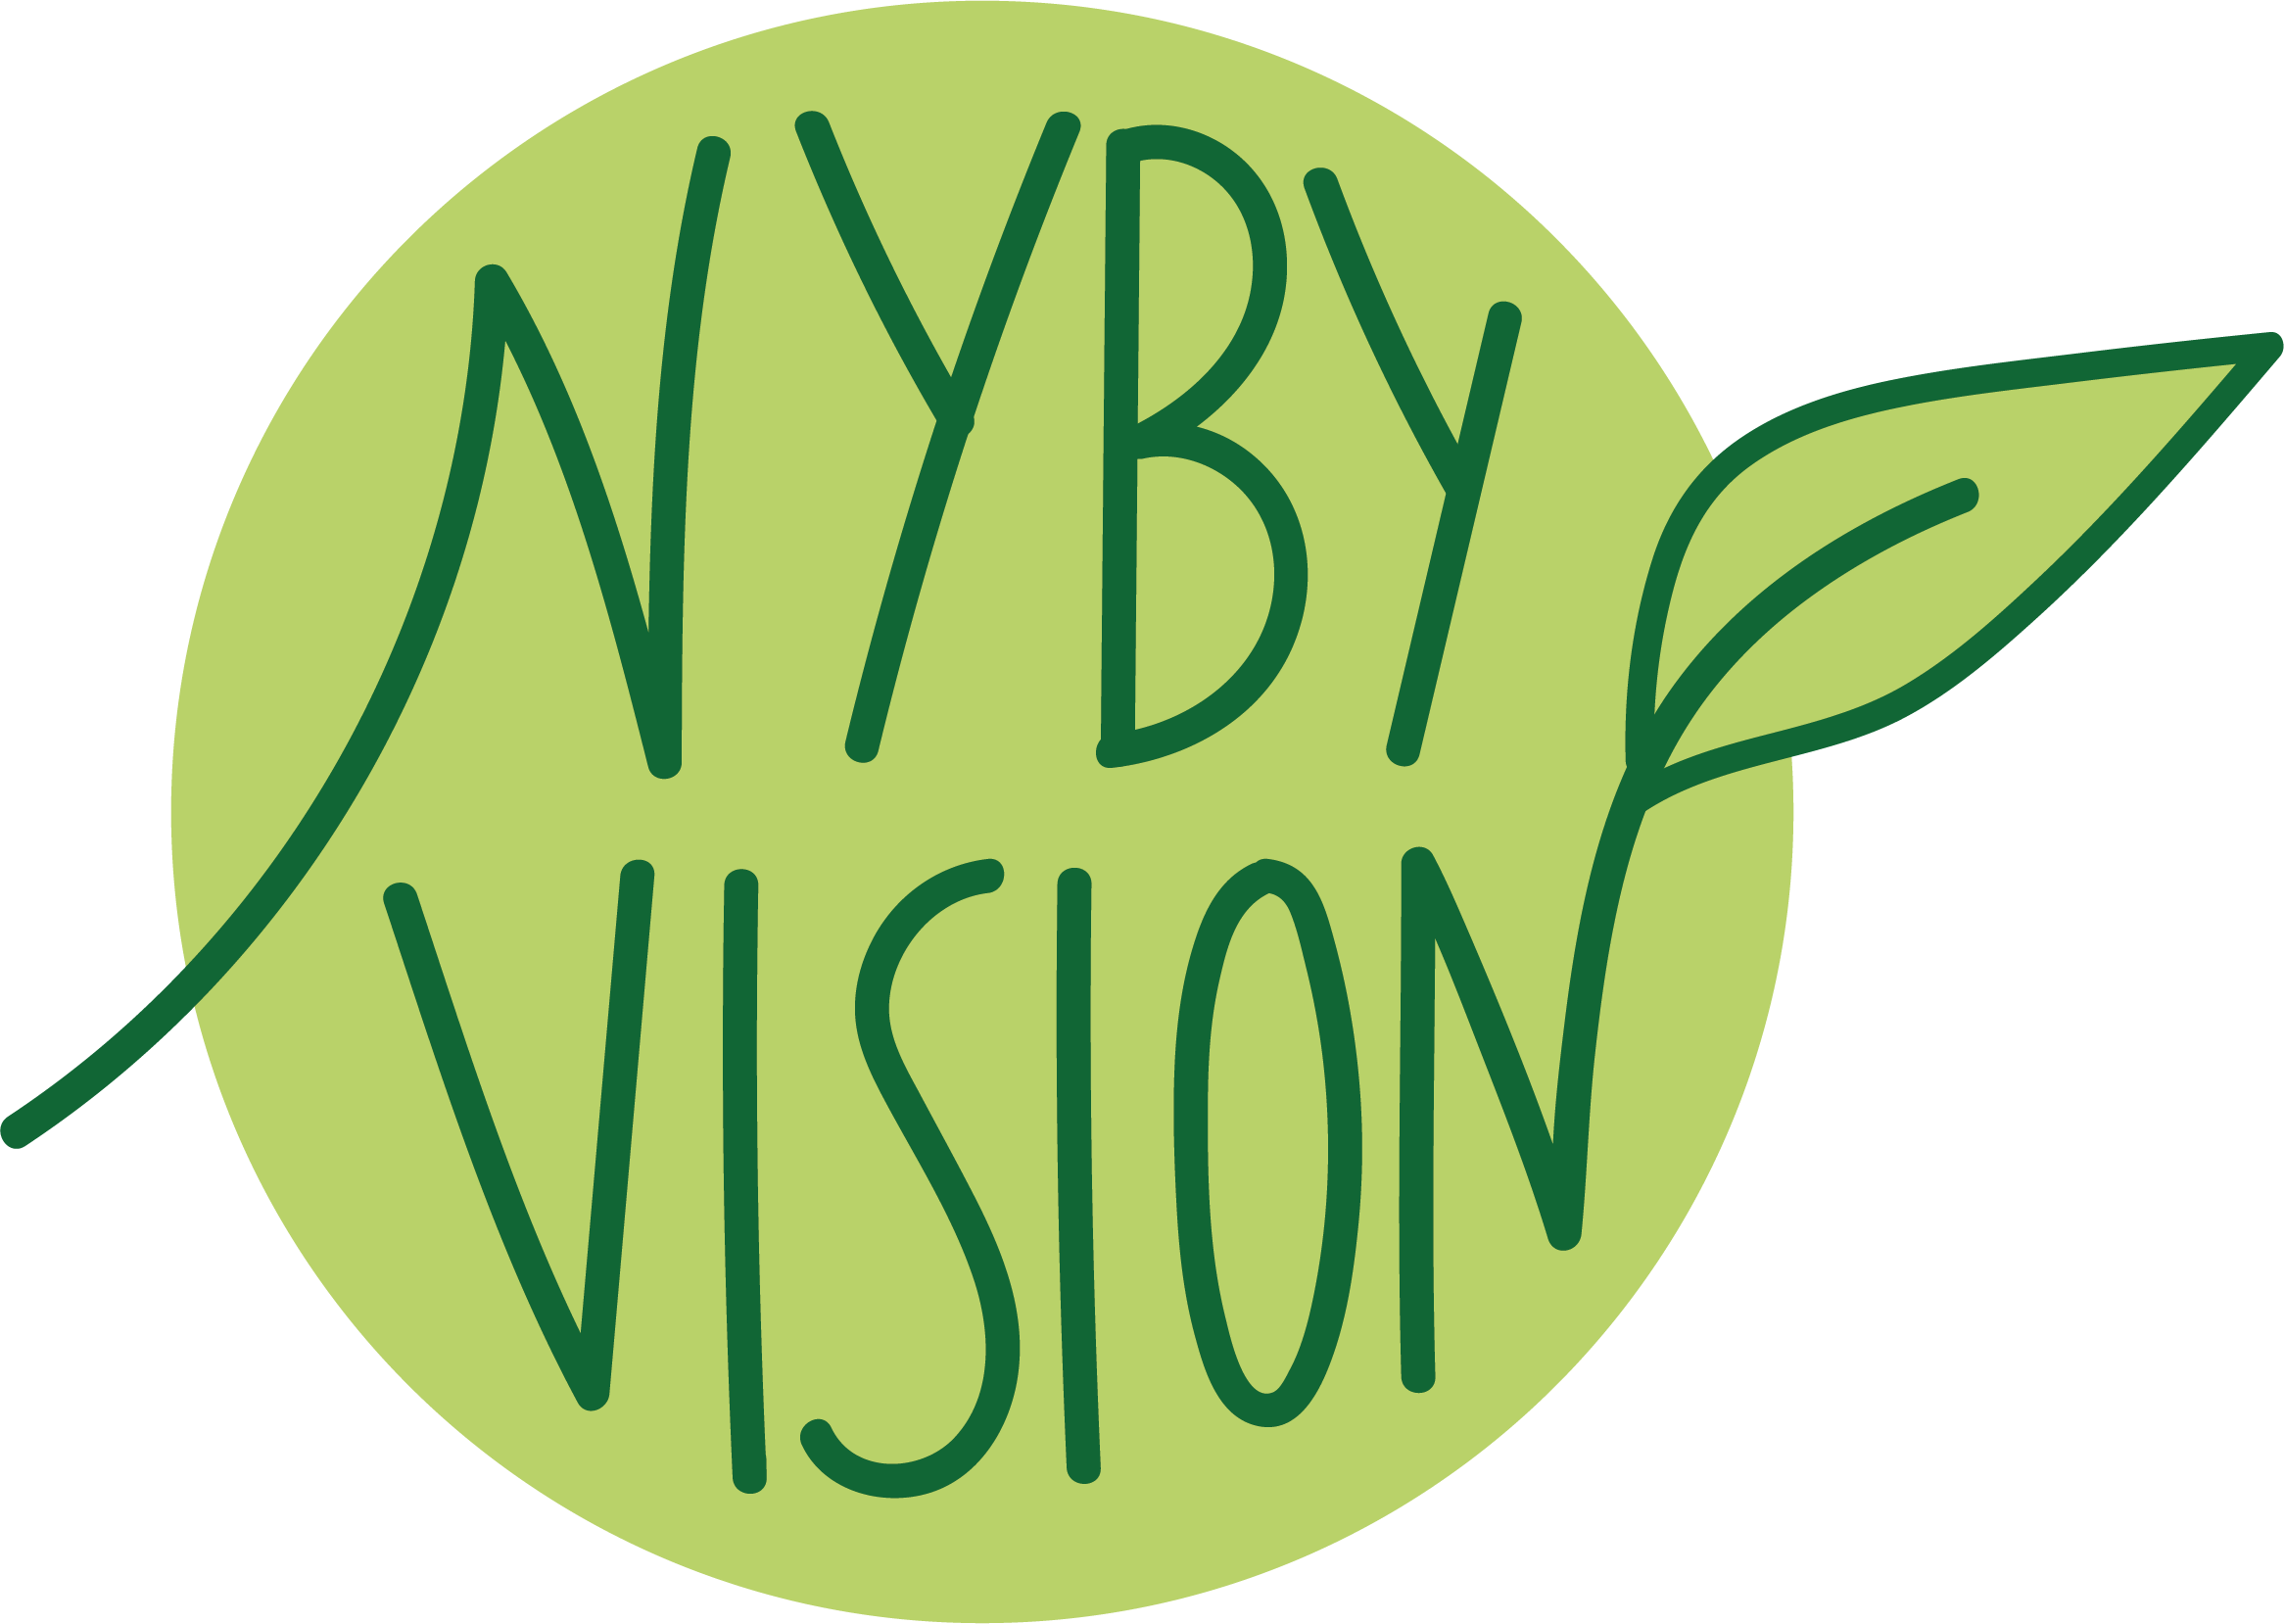 NybyVision